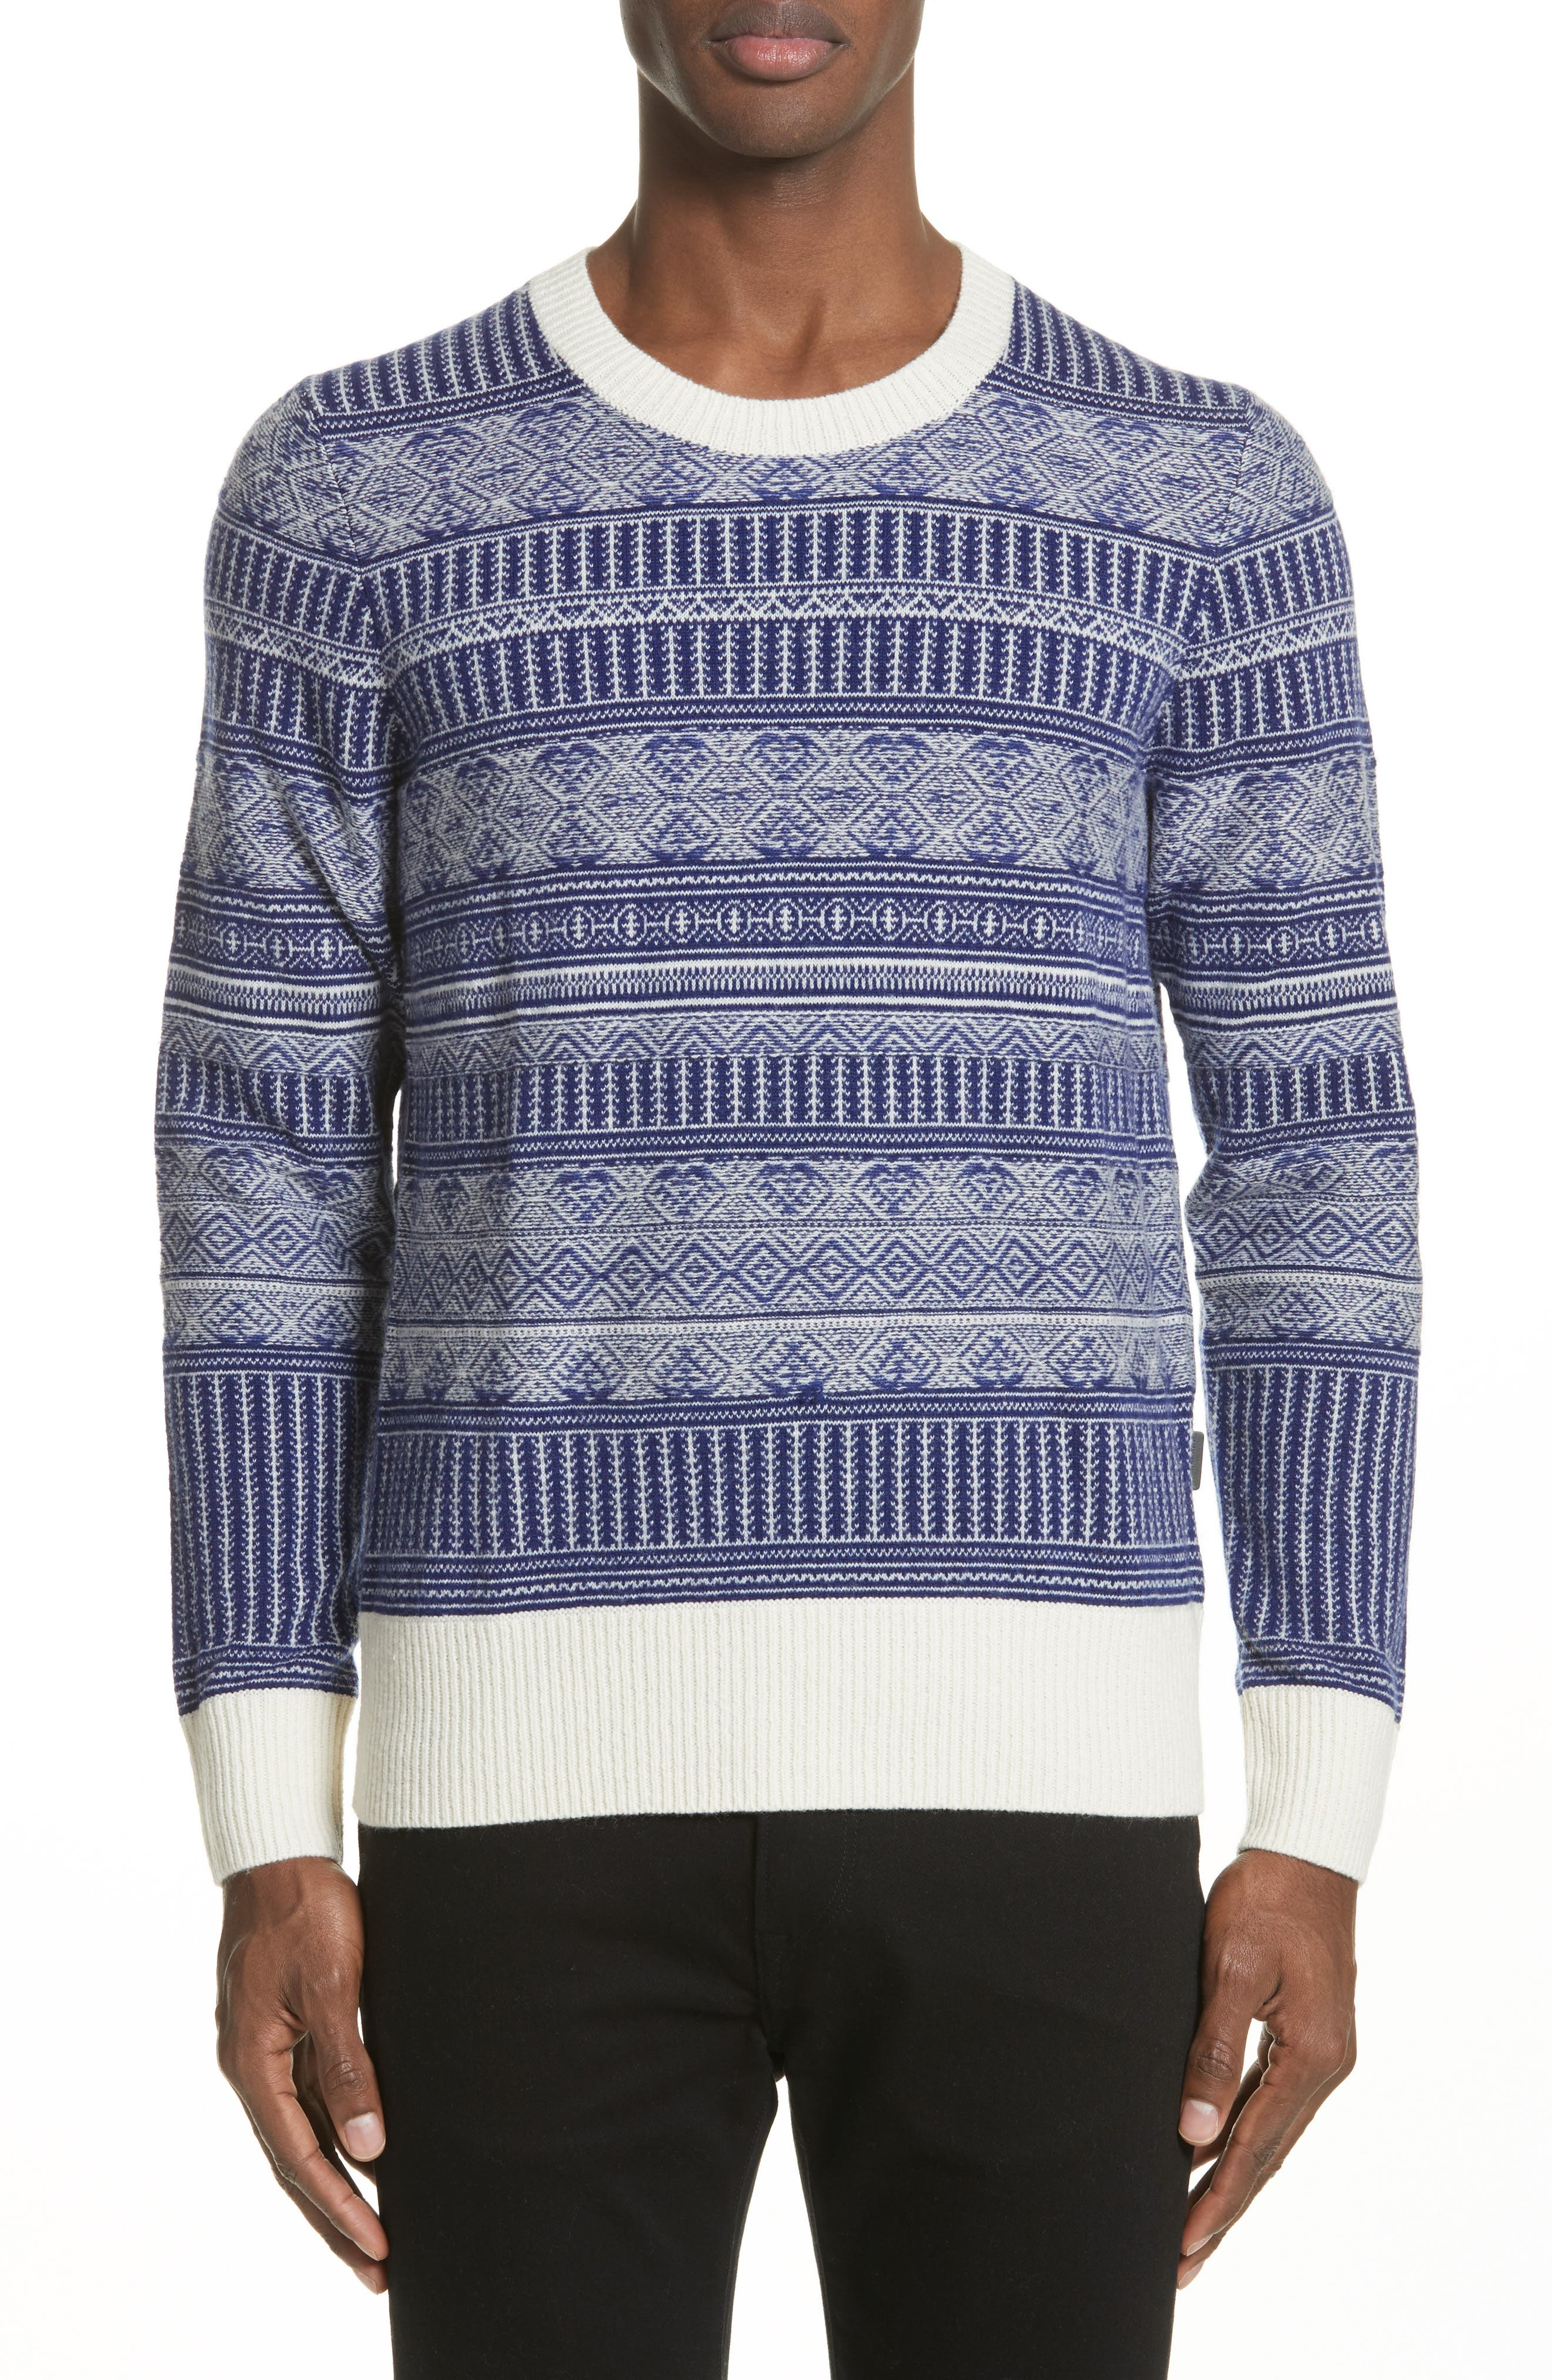 Tredway Wool & Cashmere Sweater,                         Main,                         color, 410